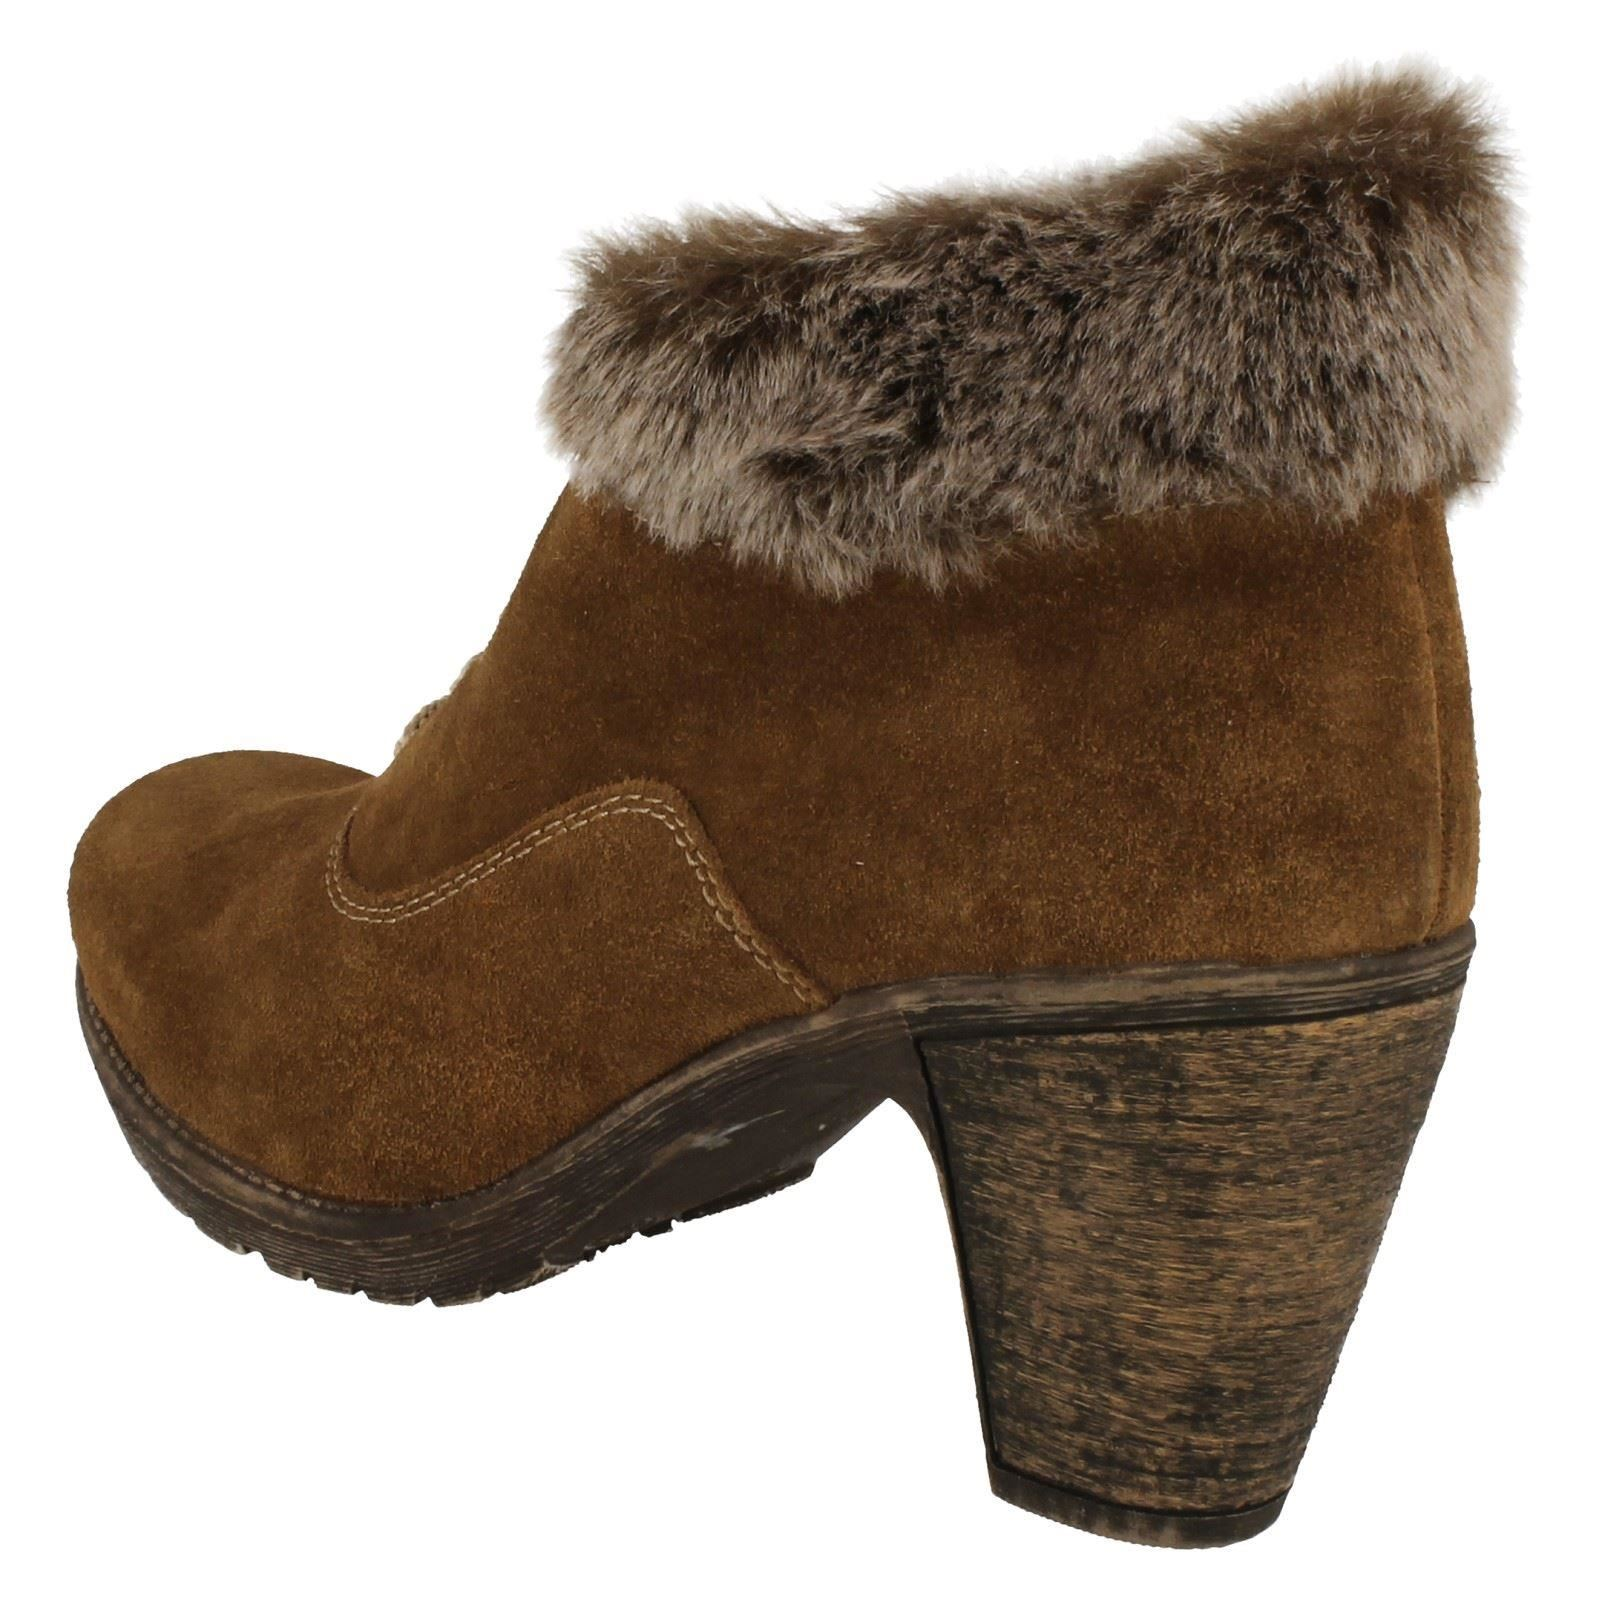 Boots Brown Ankle 72020 Fur Topped Ladies Rieker w6qCS6f